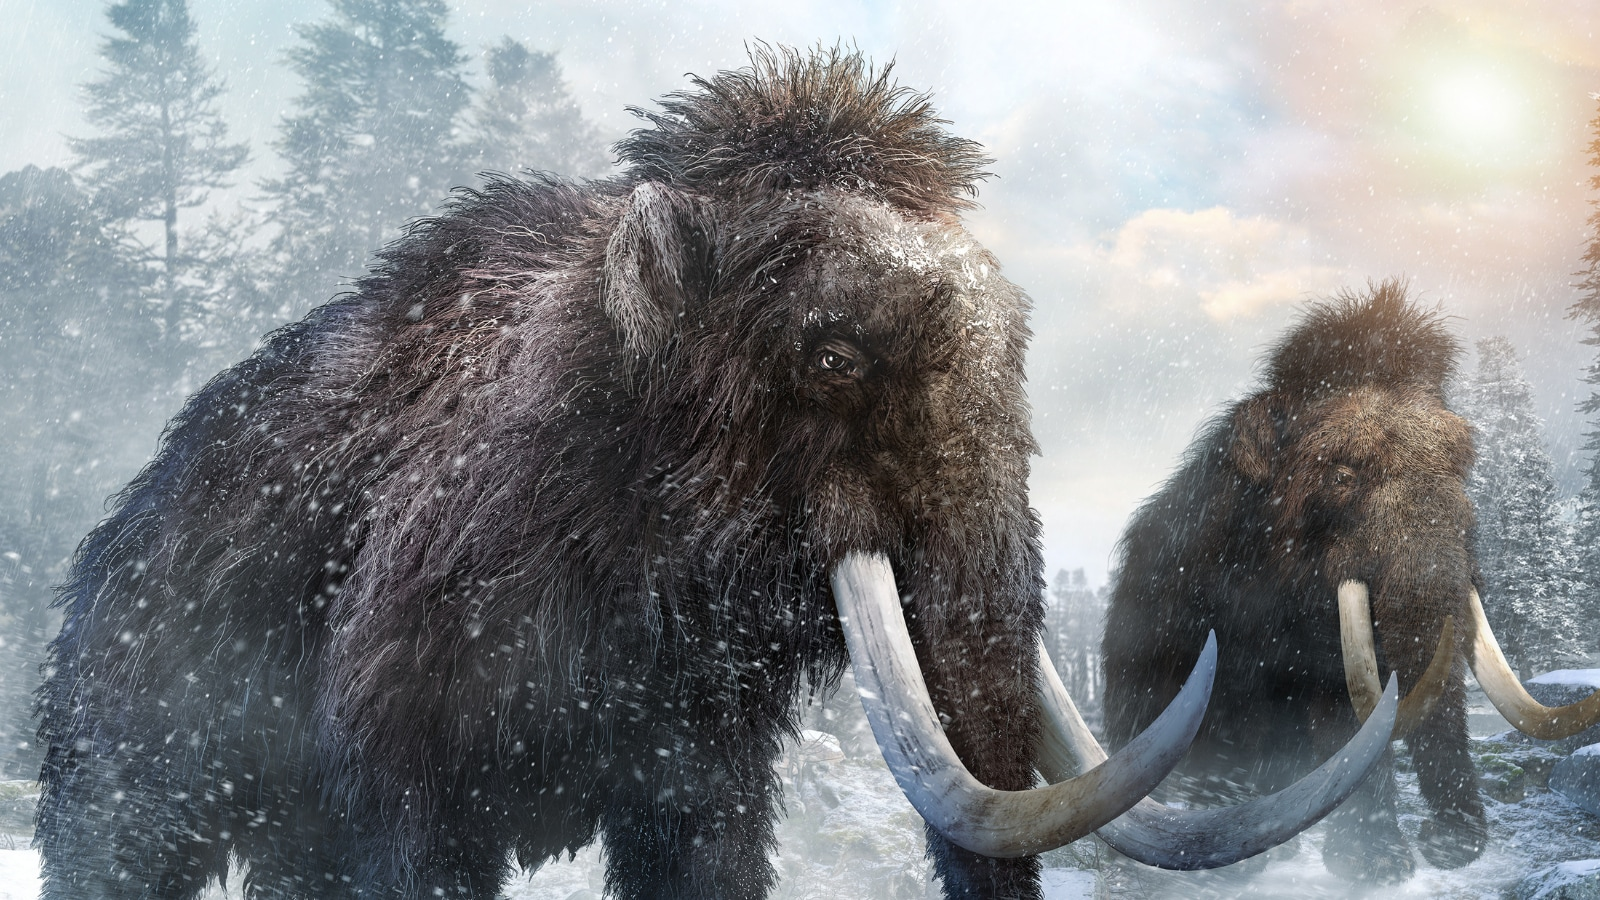 Mammoths Went Extinct Much Later Than Scientists Previously Thought: Study